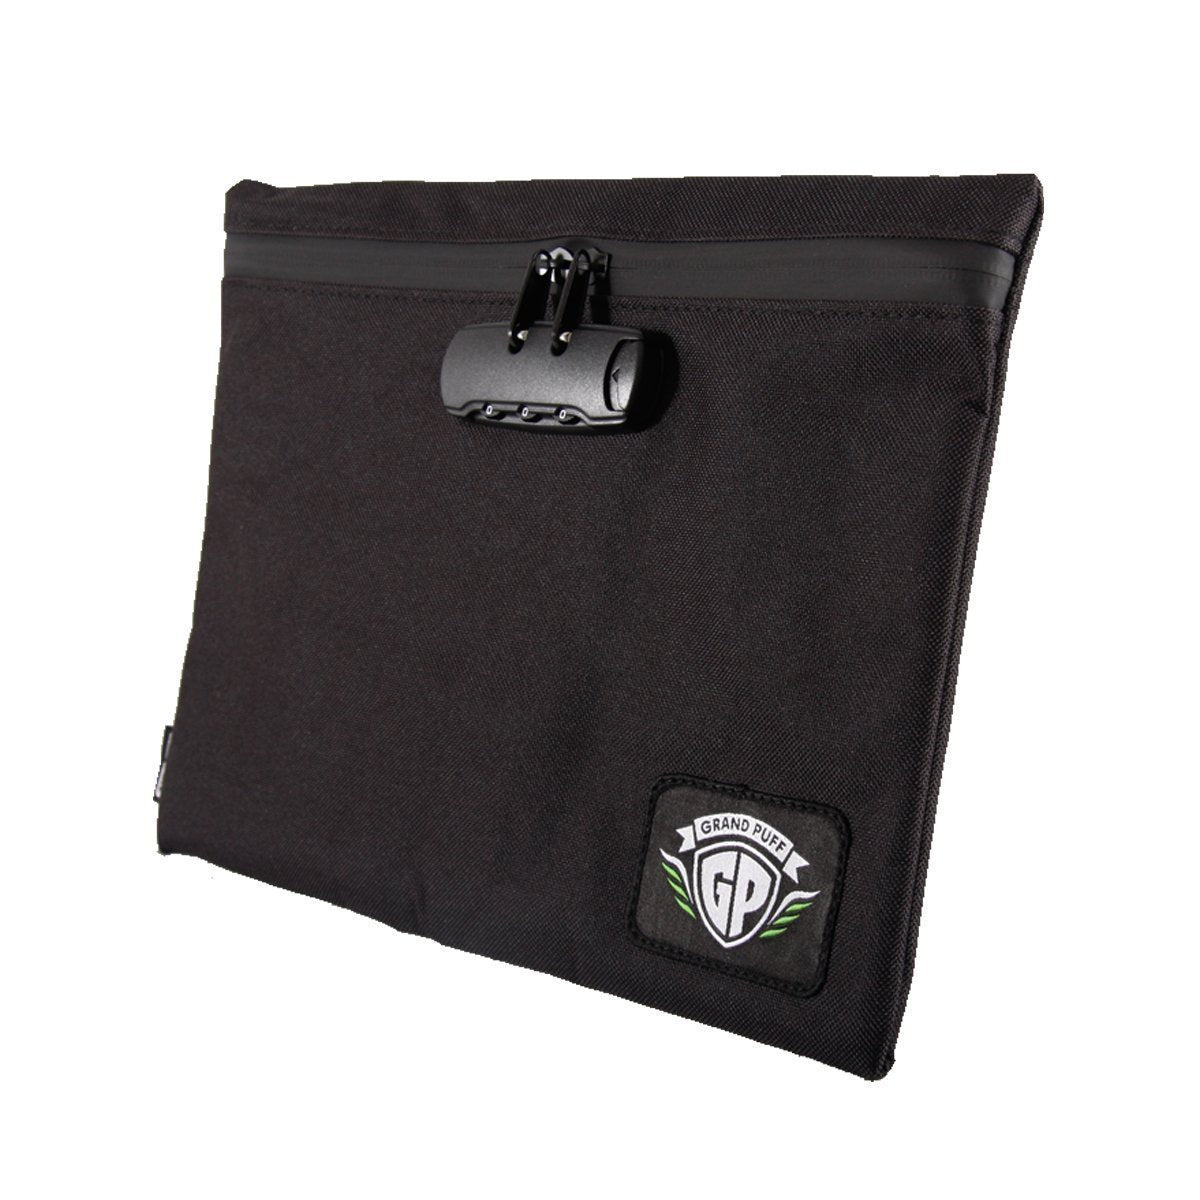 Grand Puff Stash Locker Exit Bag